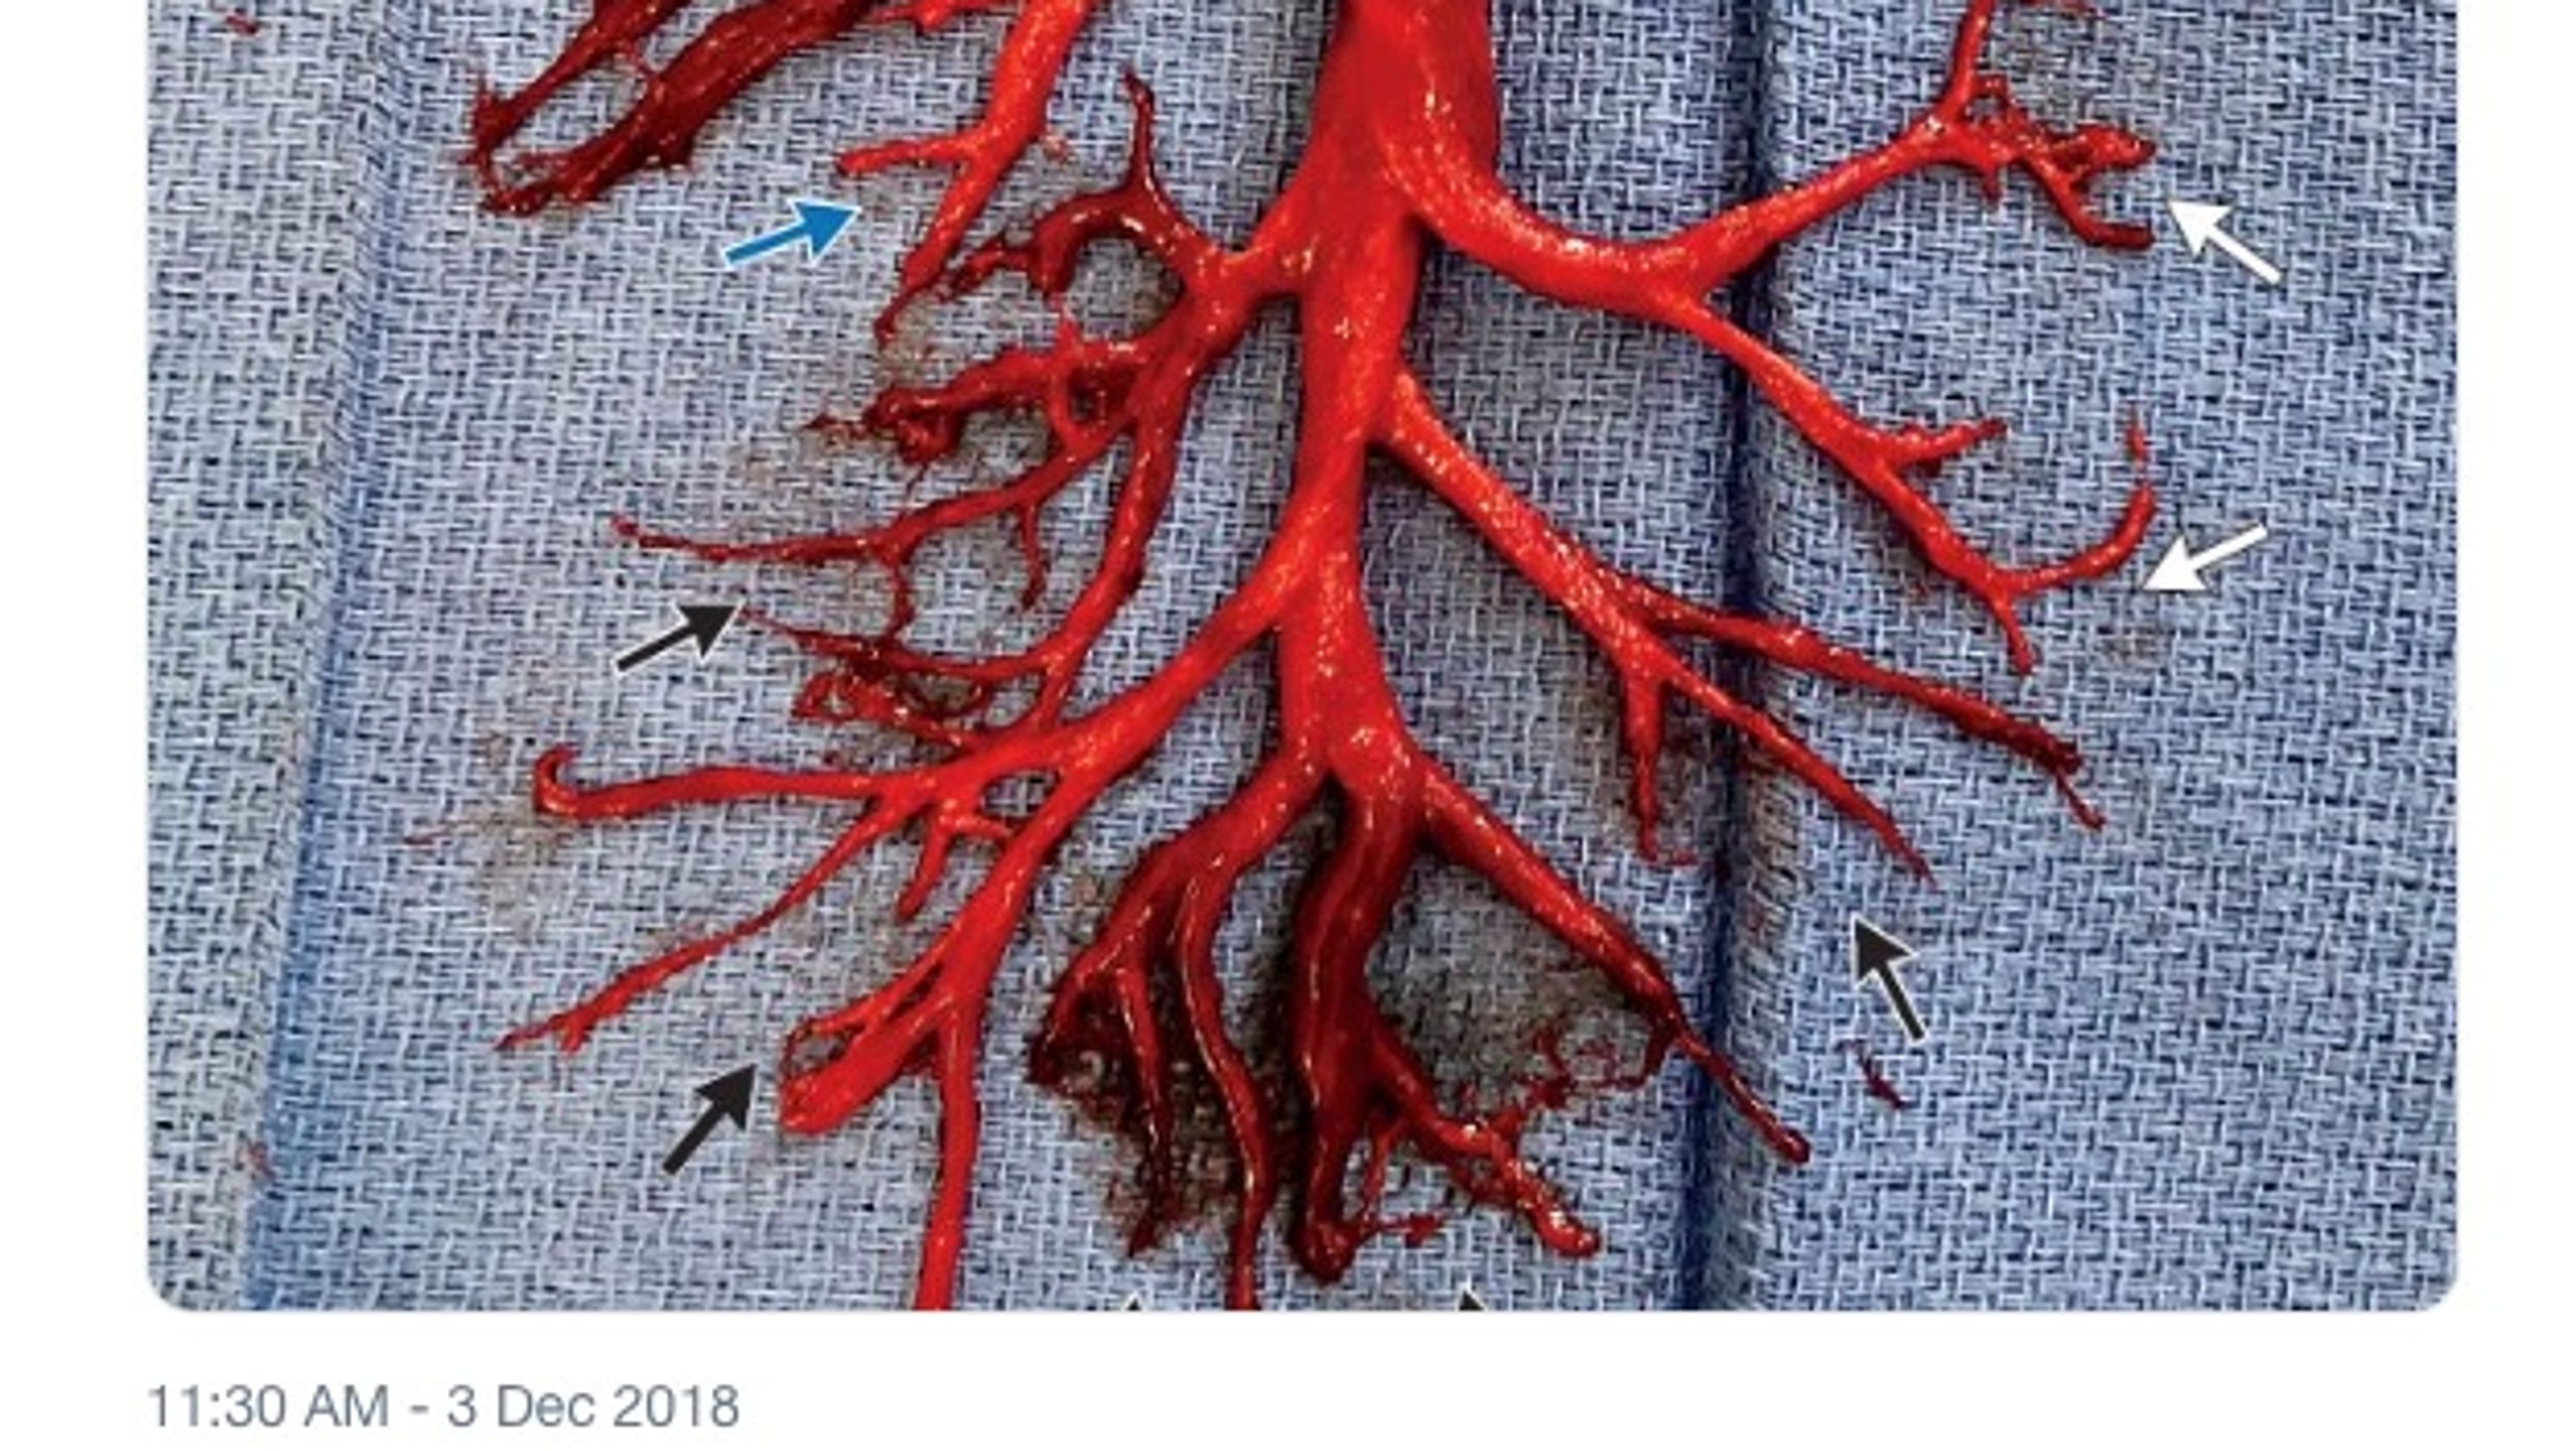 Nejm Shares Odd Photo Of Blood Clot Shaped Like Lung A Man Spit It Up